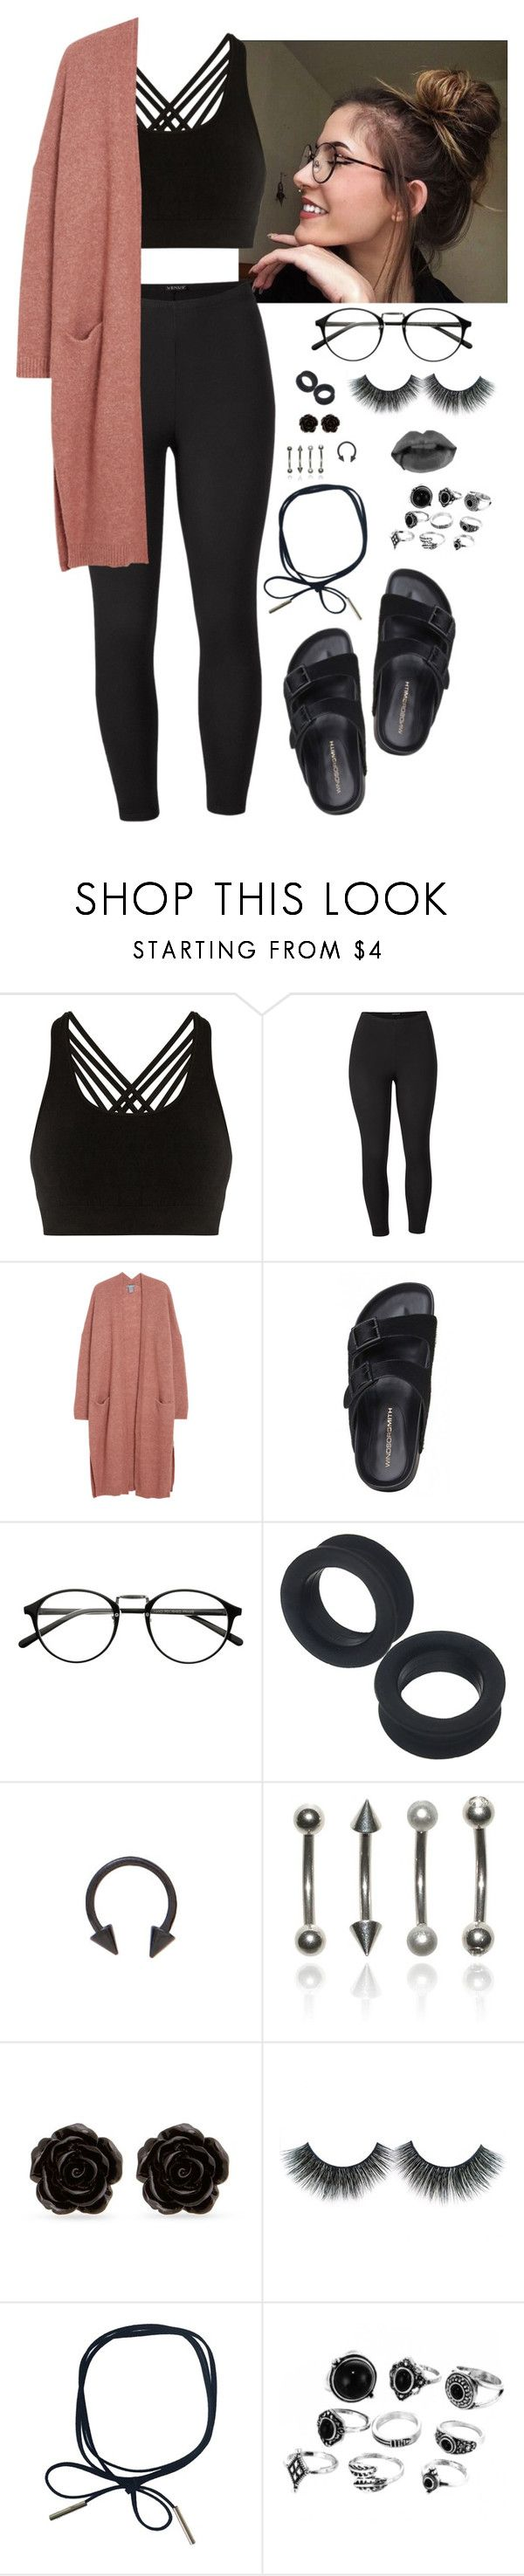 """""""Friday, I'm in love """" by thatonekidintheback ❤ liked on Polyvore featuring Pepper & Mayne, Venus, Erica Lyons and plus size clothing"""